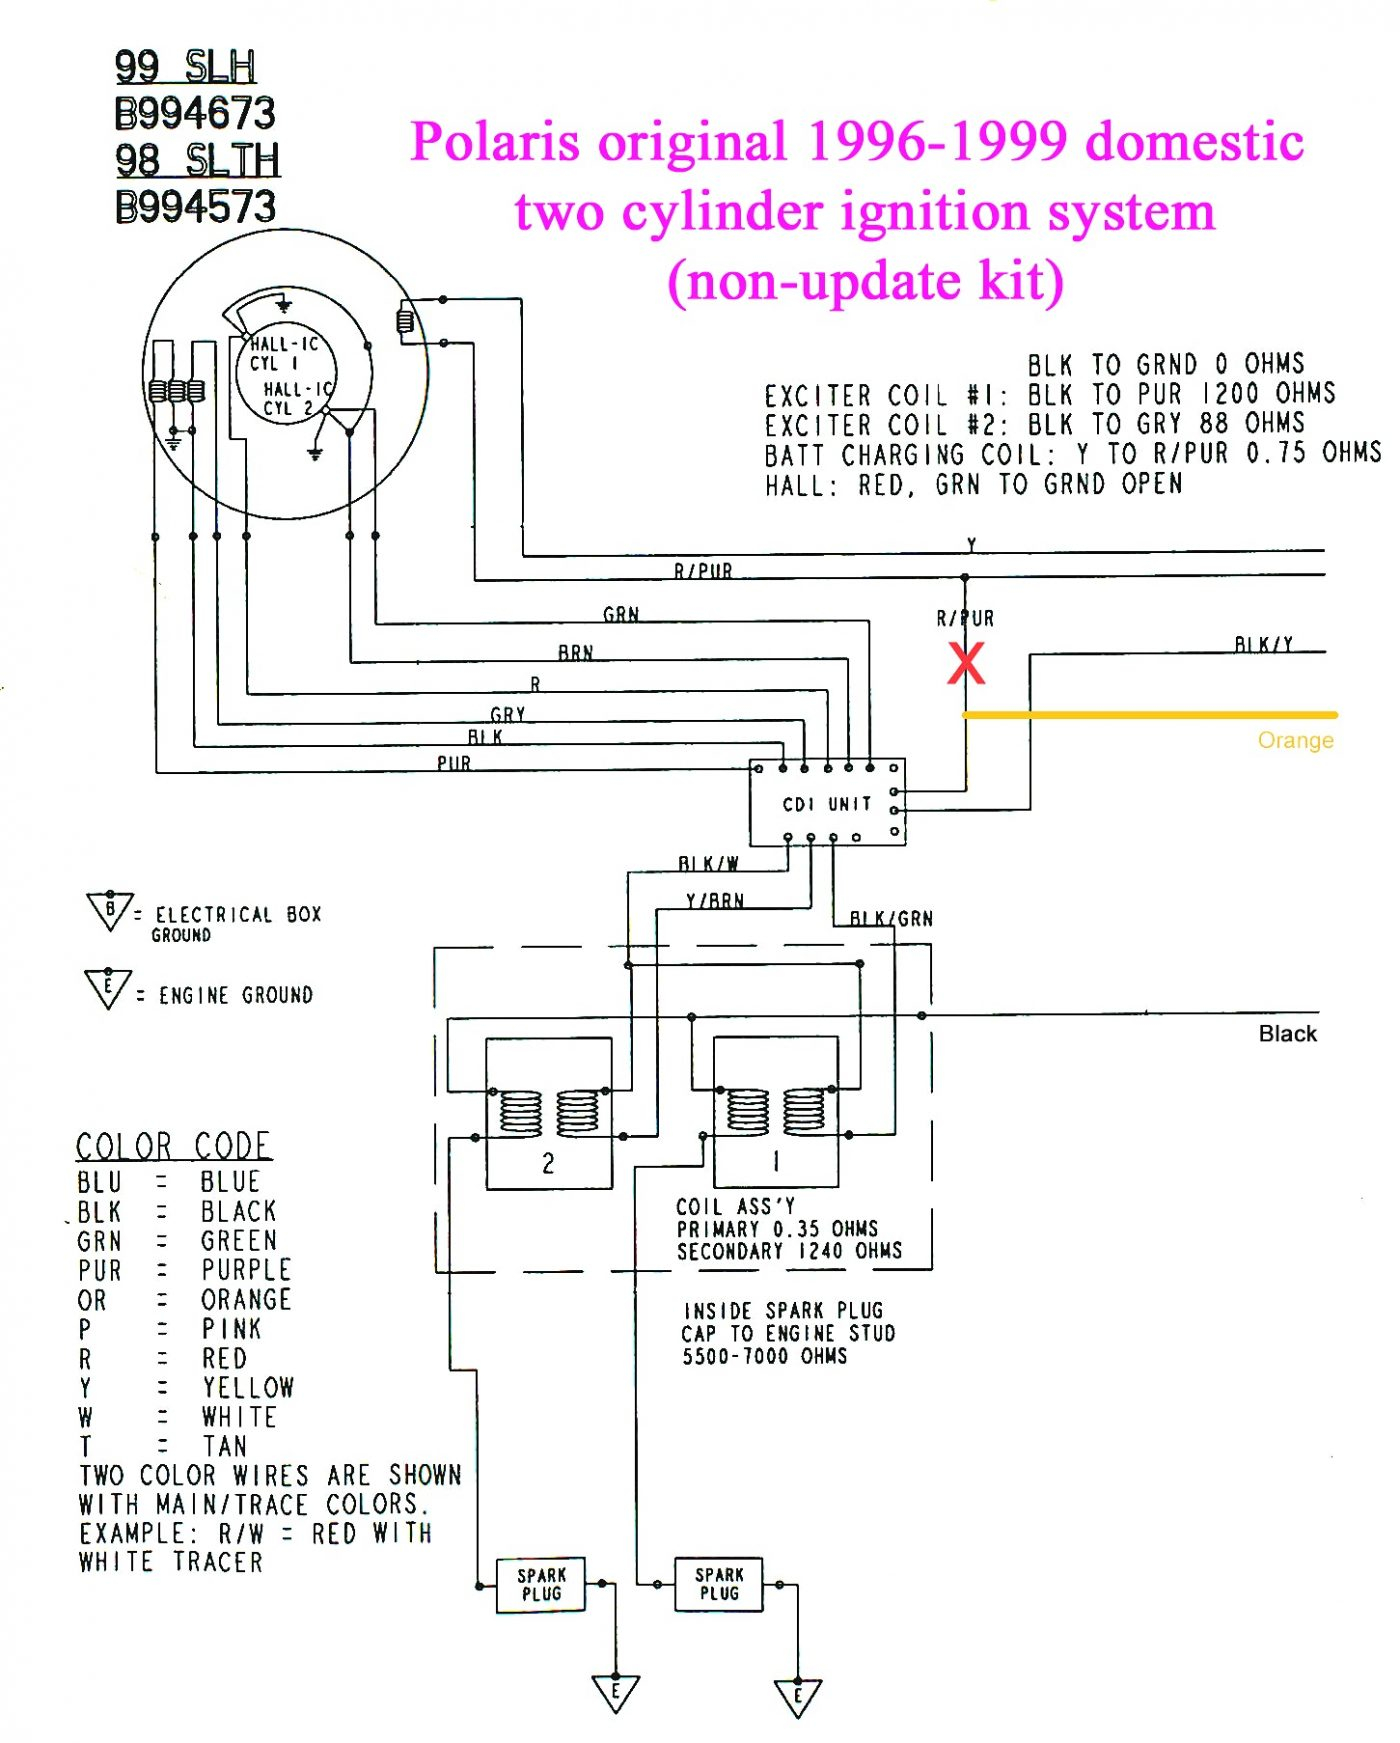 da lite motorized screen wiring diagram Collection-Da Lite Motorized Screen Wiring Diagram Elegant Da Lite Motorized Screen Wiring Vw Beetle 2 0 11-s